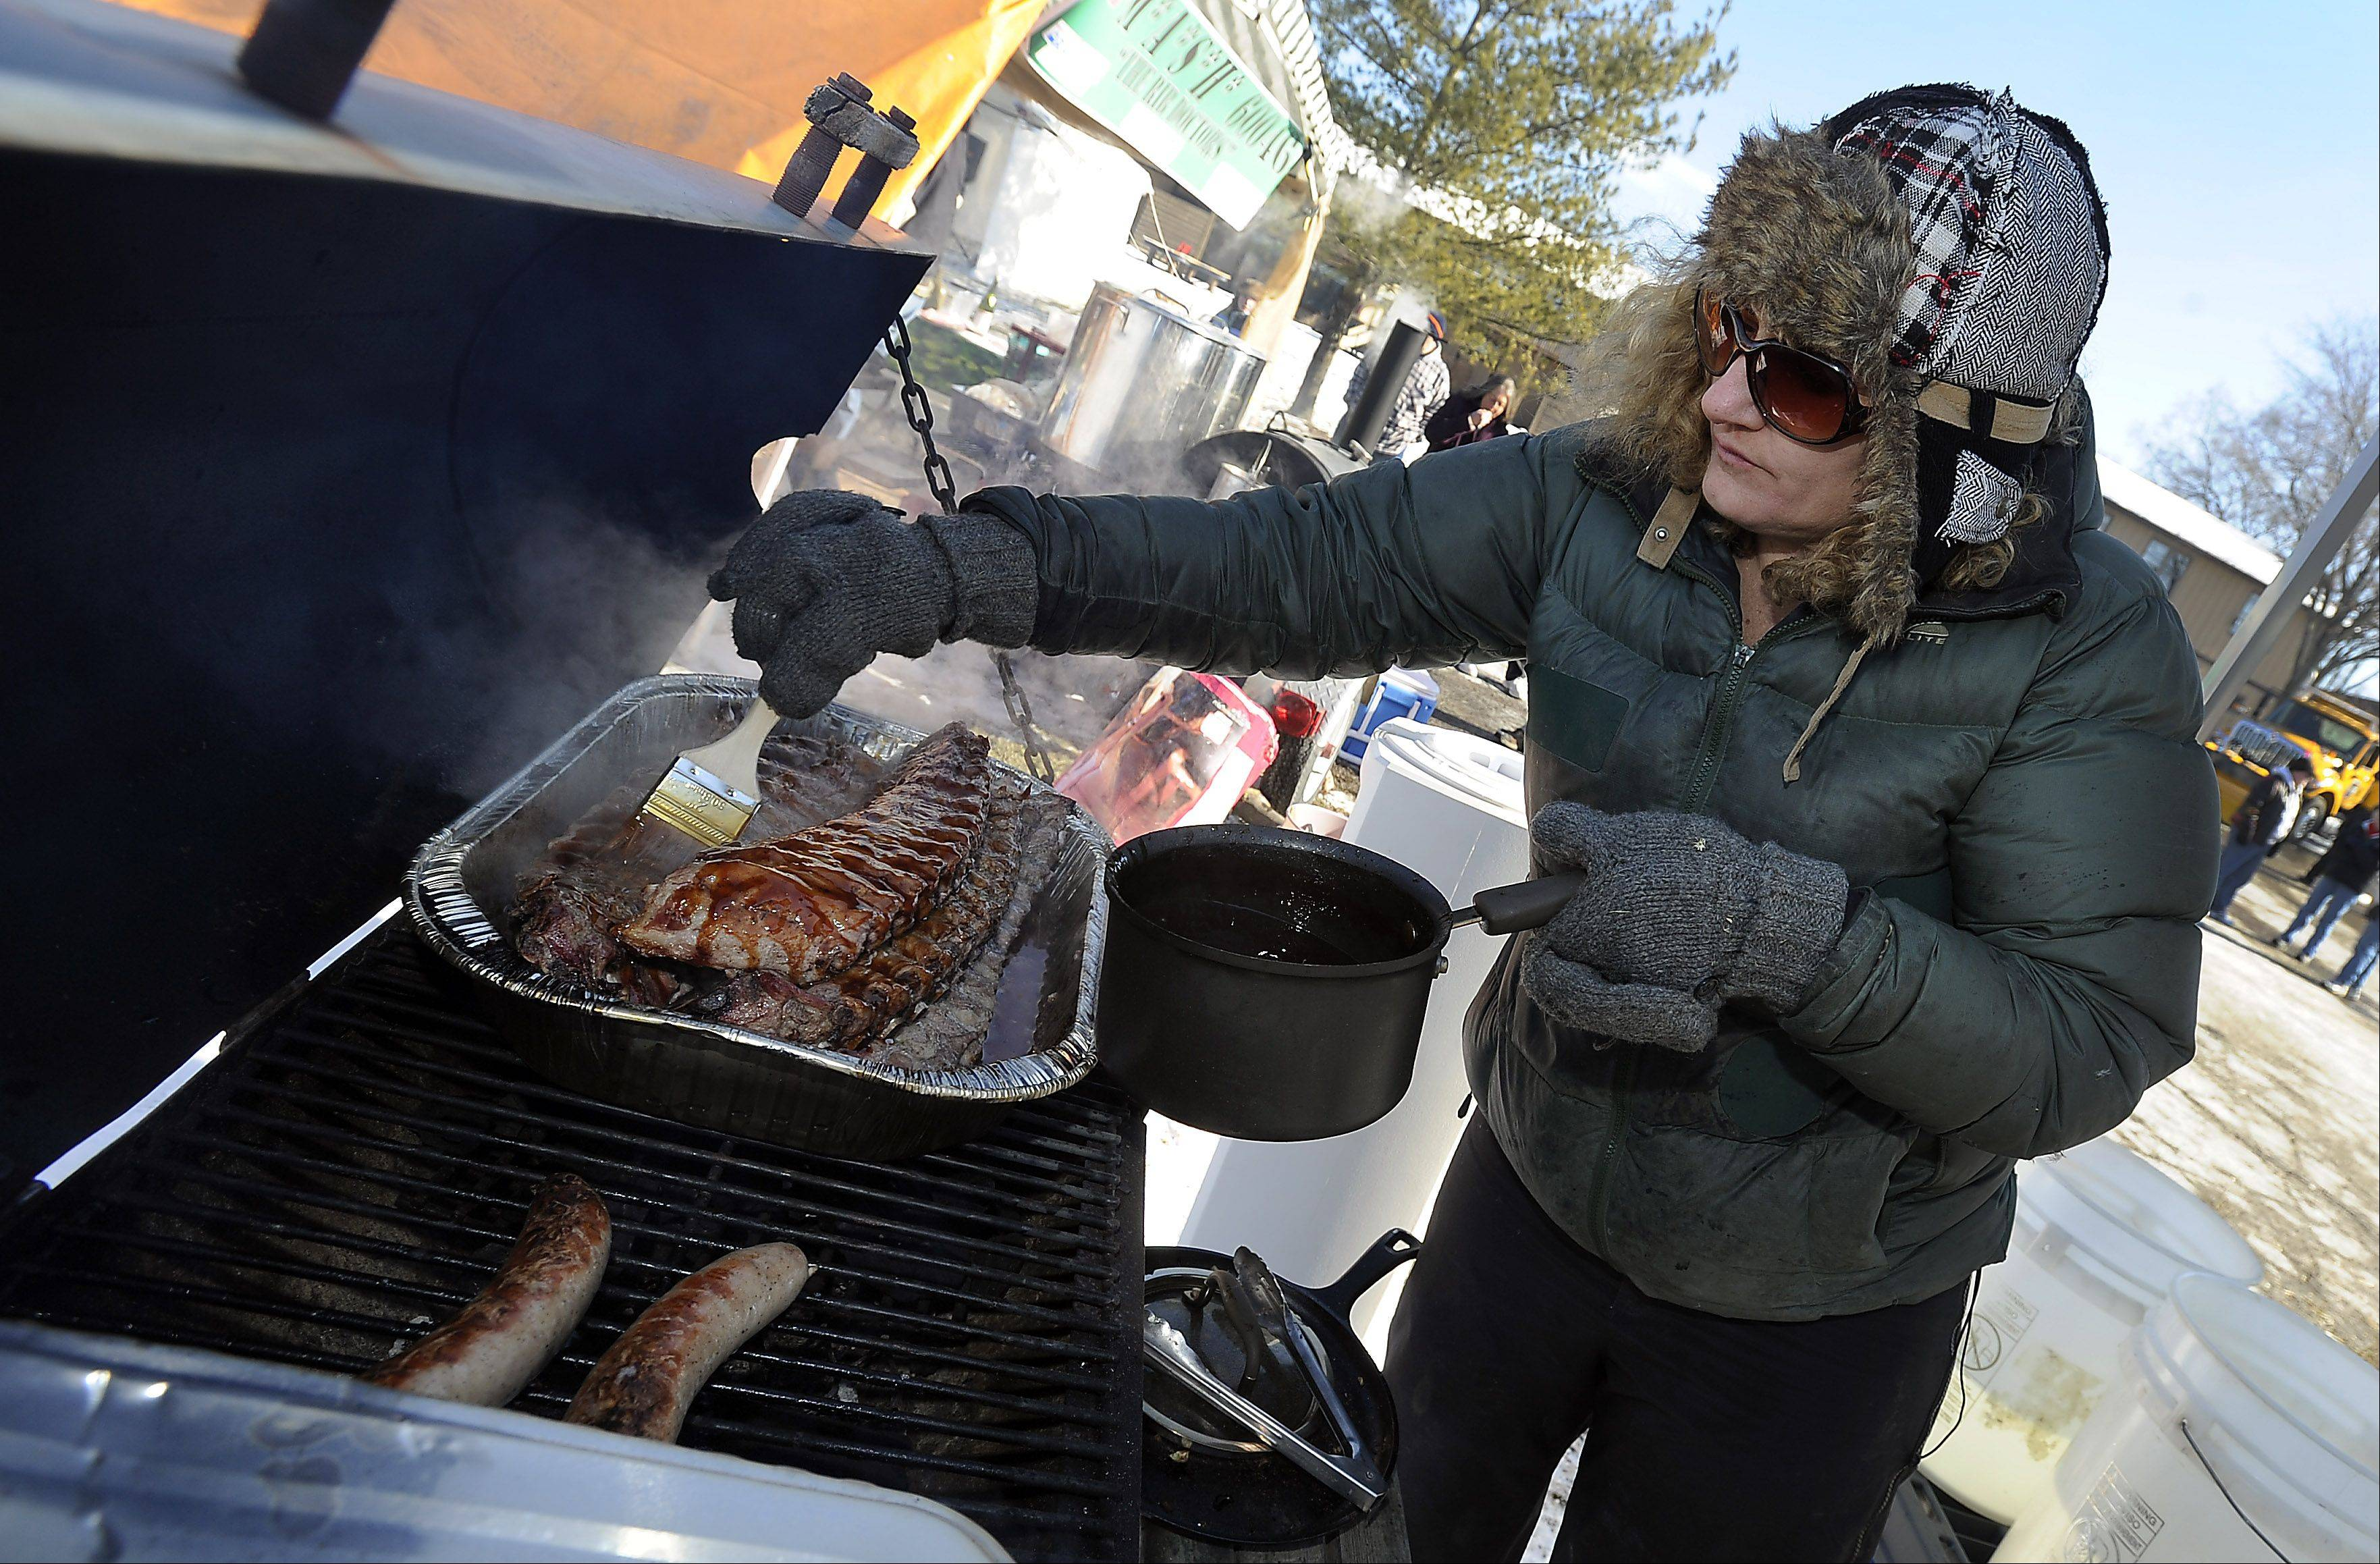 Dig in to a variety of barbecued ribs at Lake Villa's annual Winter Ribfest.